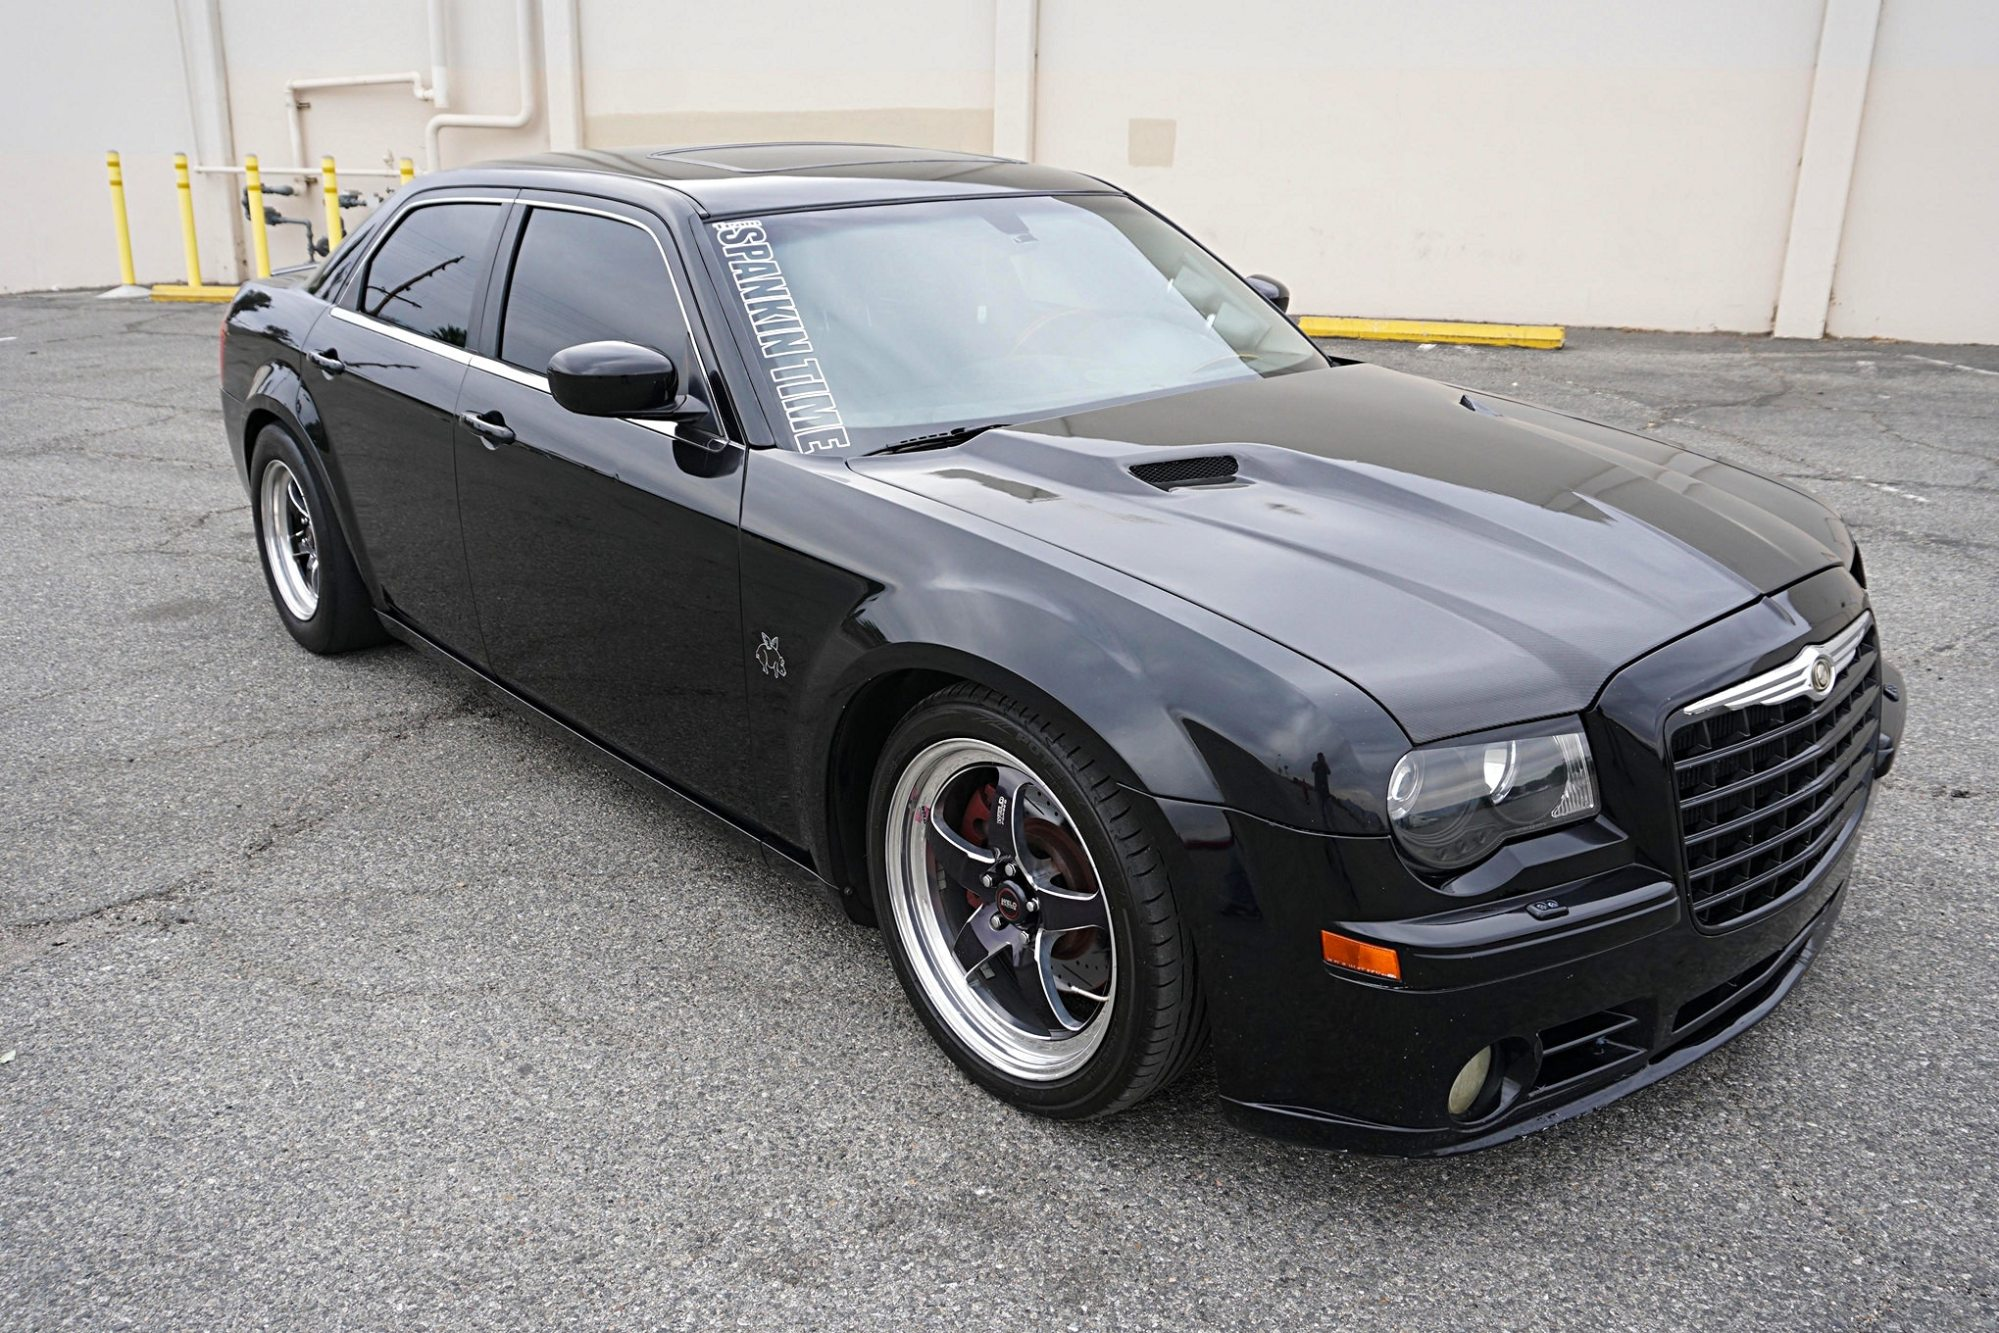 hight resolution of sleek black and unassuming albert villalobos s chrysler 300c may look fairly stock but this mopar has been reworked for ultra performance from front to